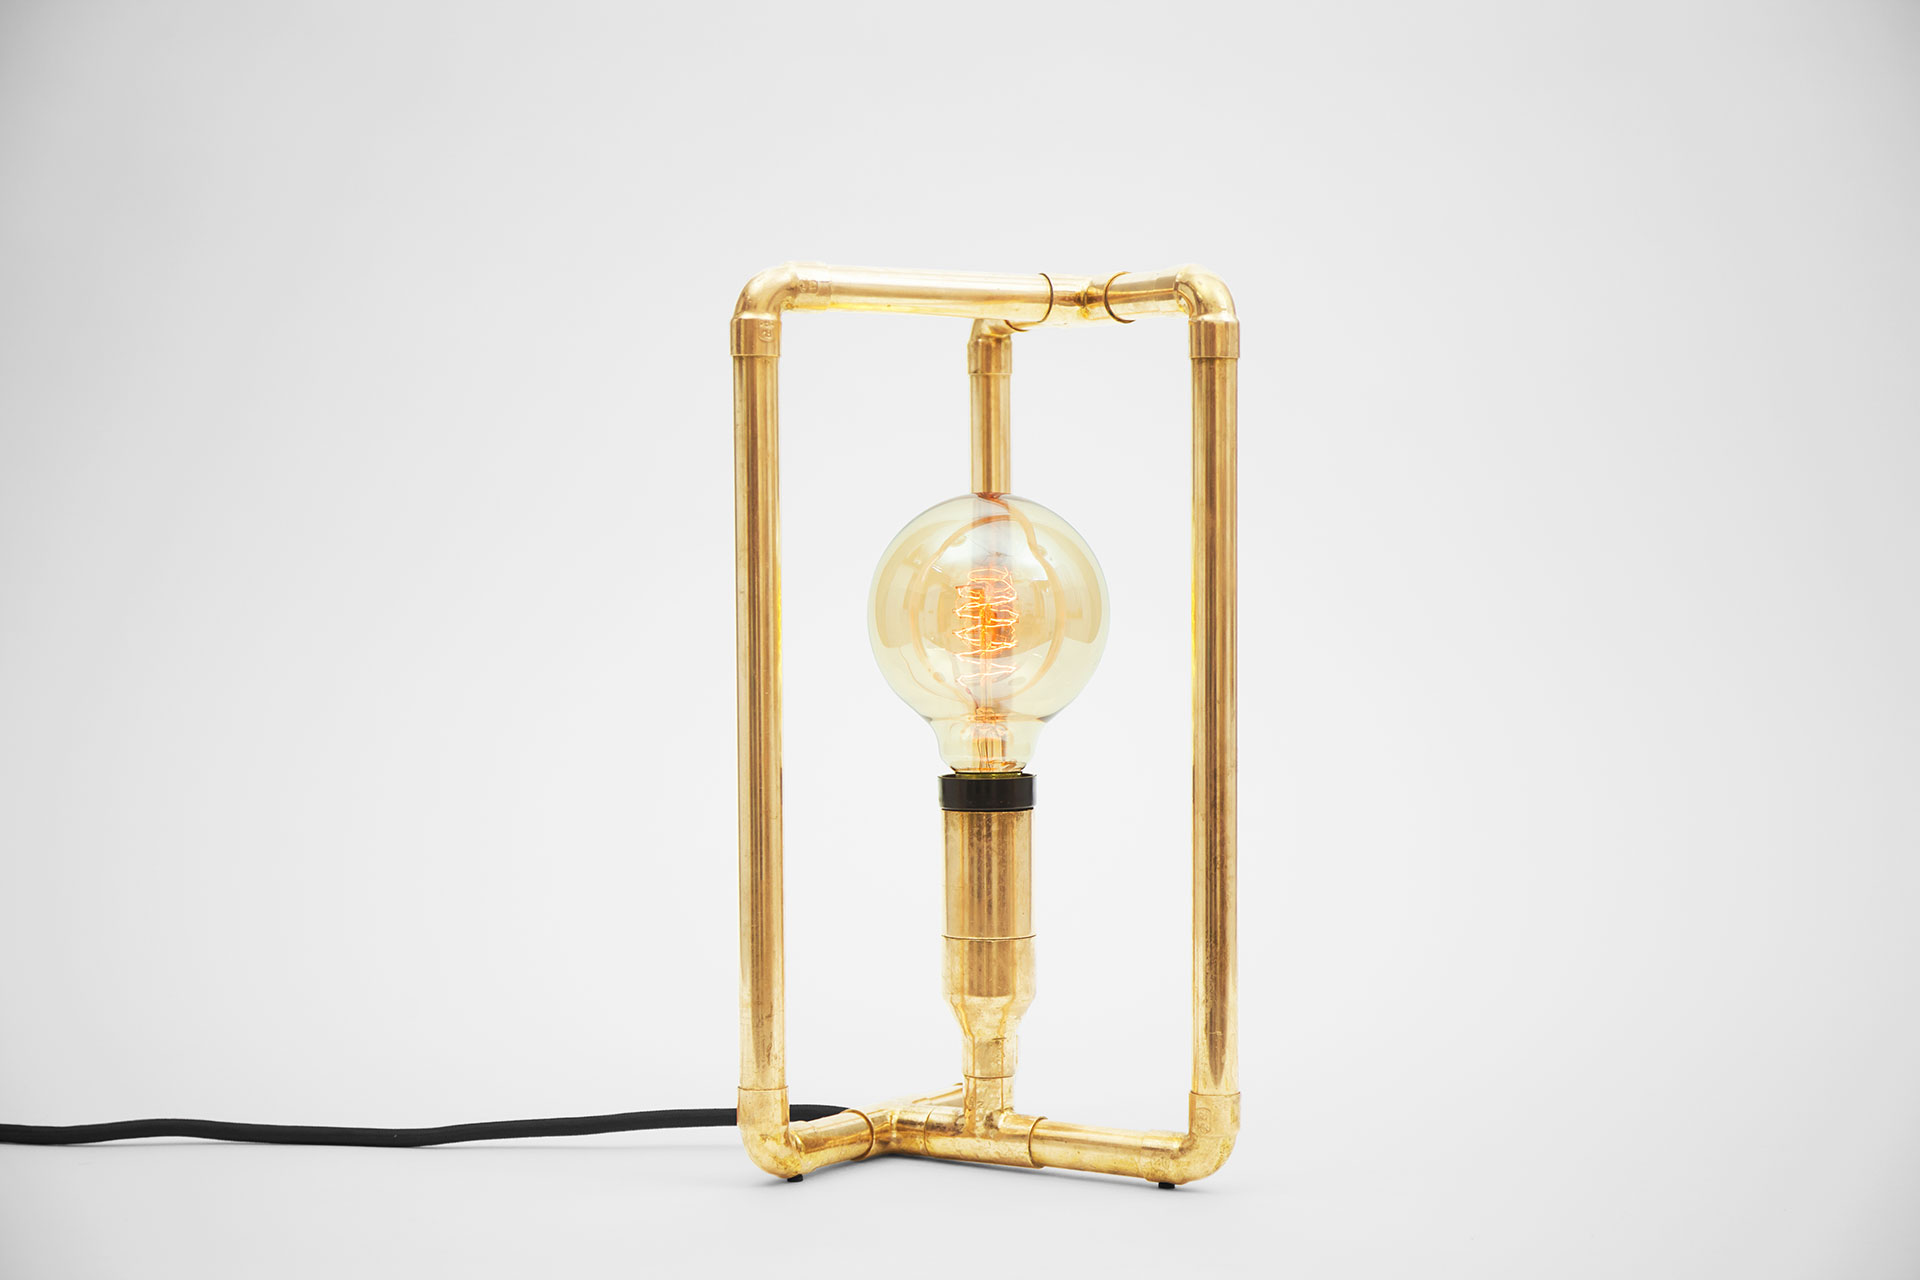 Small bedside lamp in gold brass metal finish with retro Tesla bulb inspired by modern minimalist design